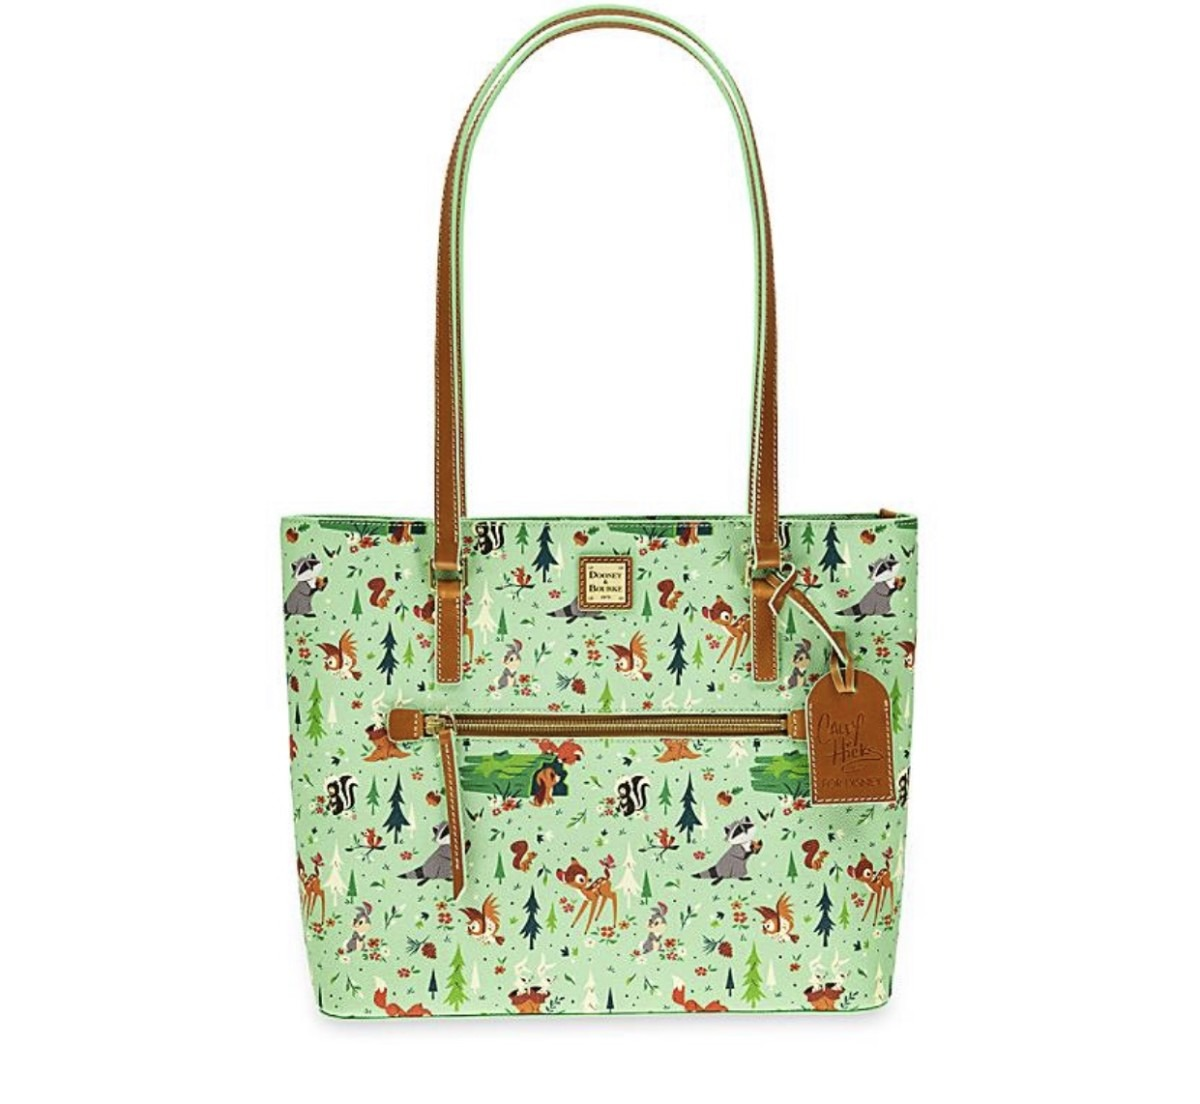 New Bambi and Friends Dooney & Bourke Now on ShopDisney 1